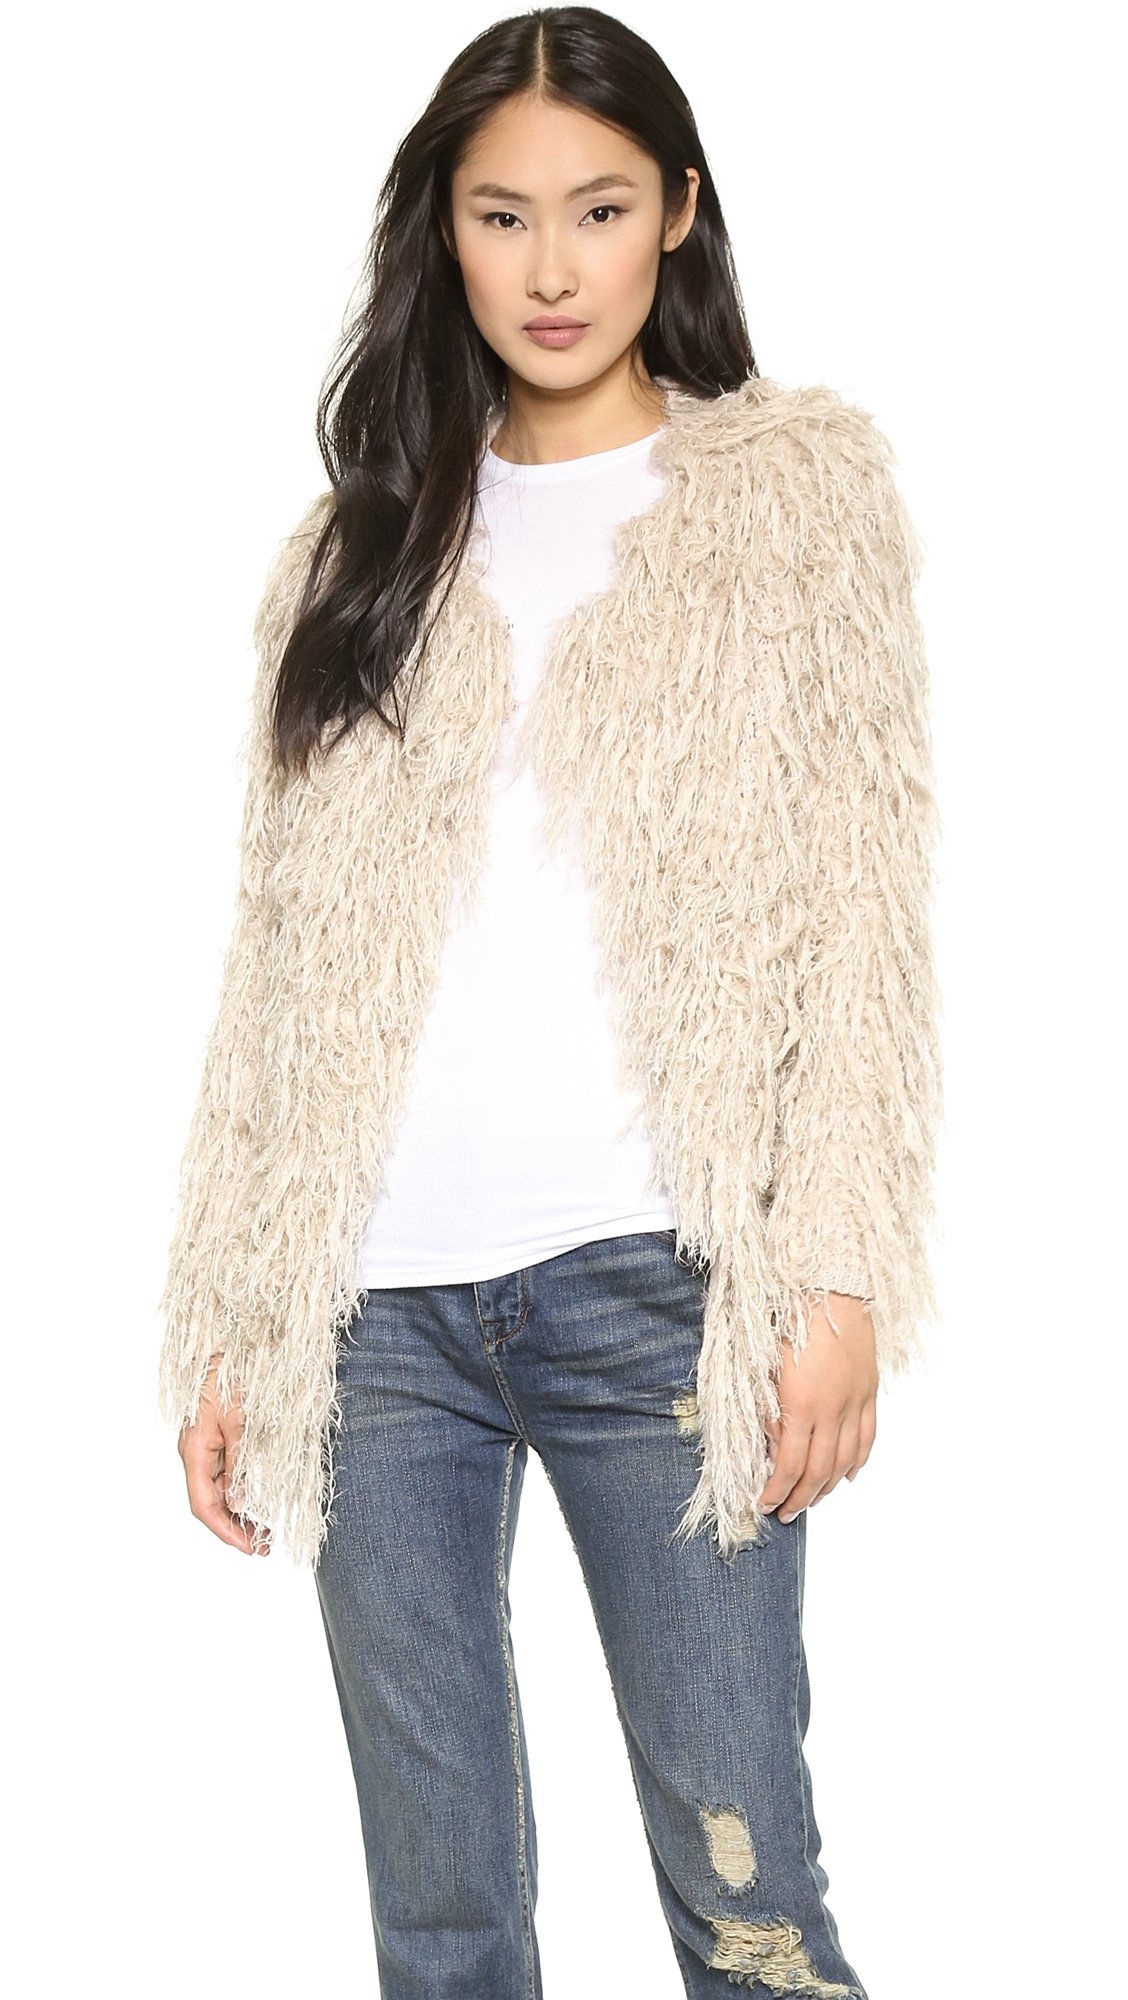 4a0842202a2eed Free People Faithful Shaggy Cardigan - Black in Natural - Lyst